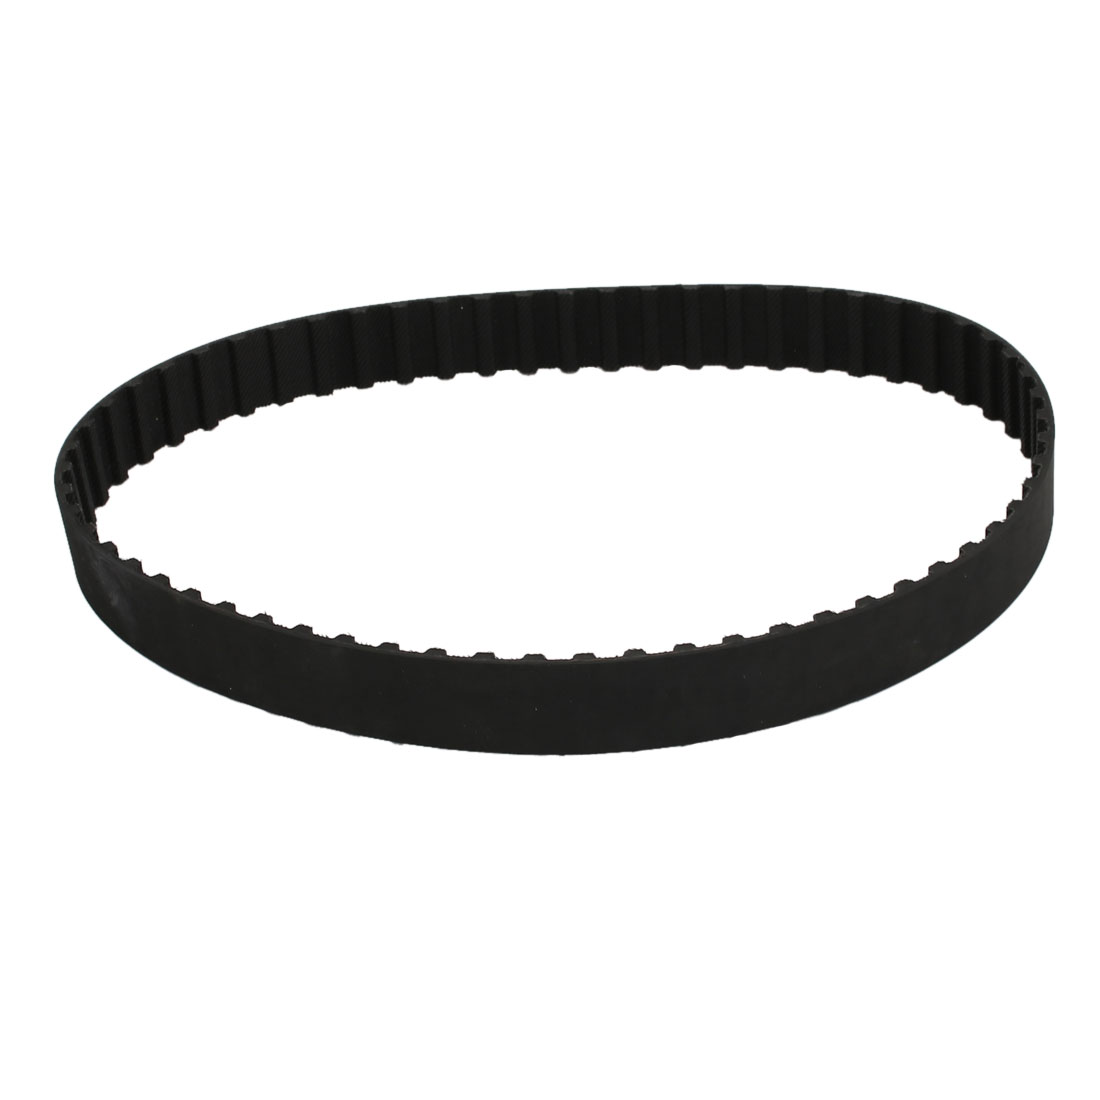 230L 61 Teeth 20mm Width 9.525mm Pitch Stepper Motor Rubber Timing Belt Black